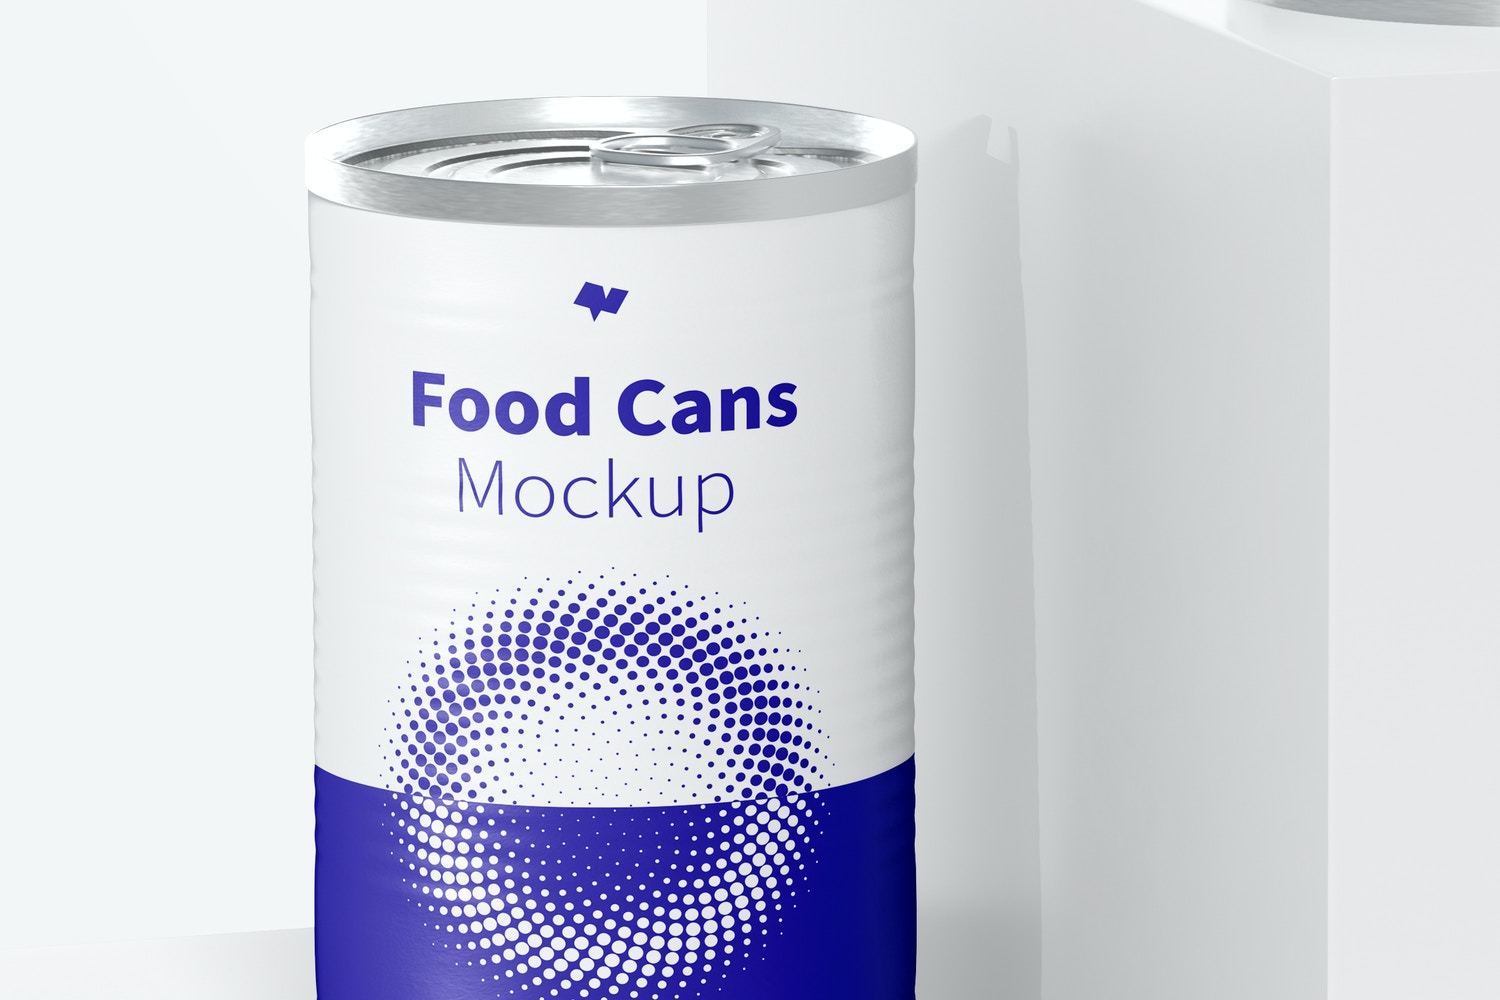 580g Food Cans Mockup, Front View